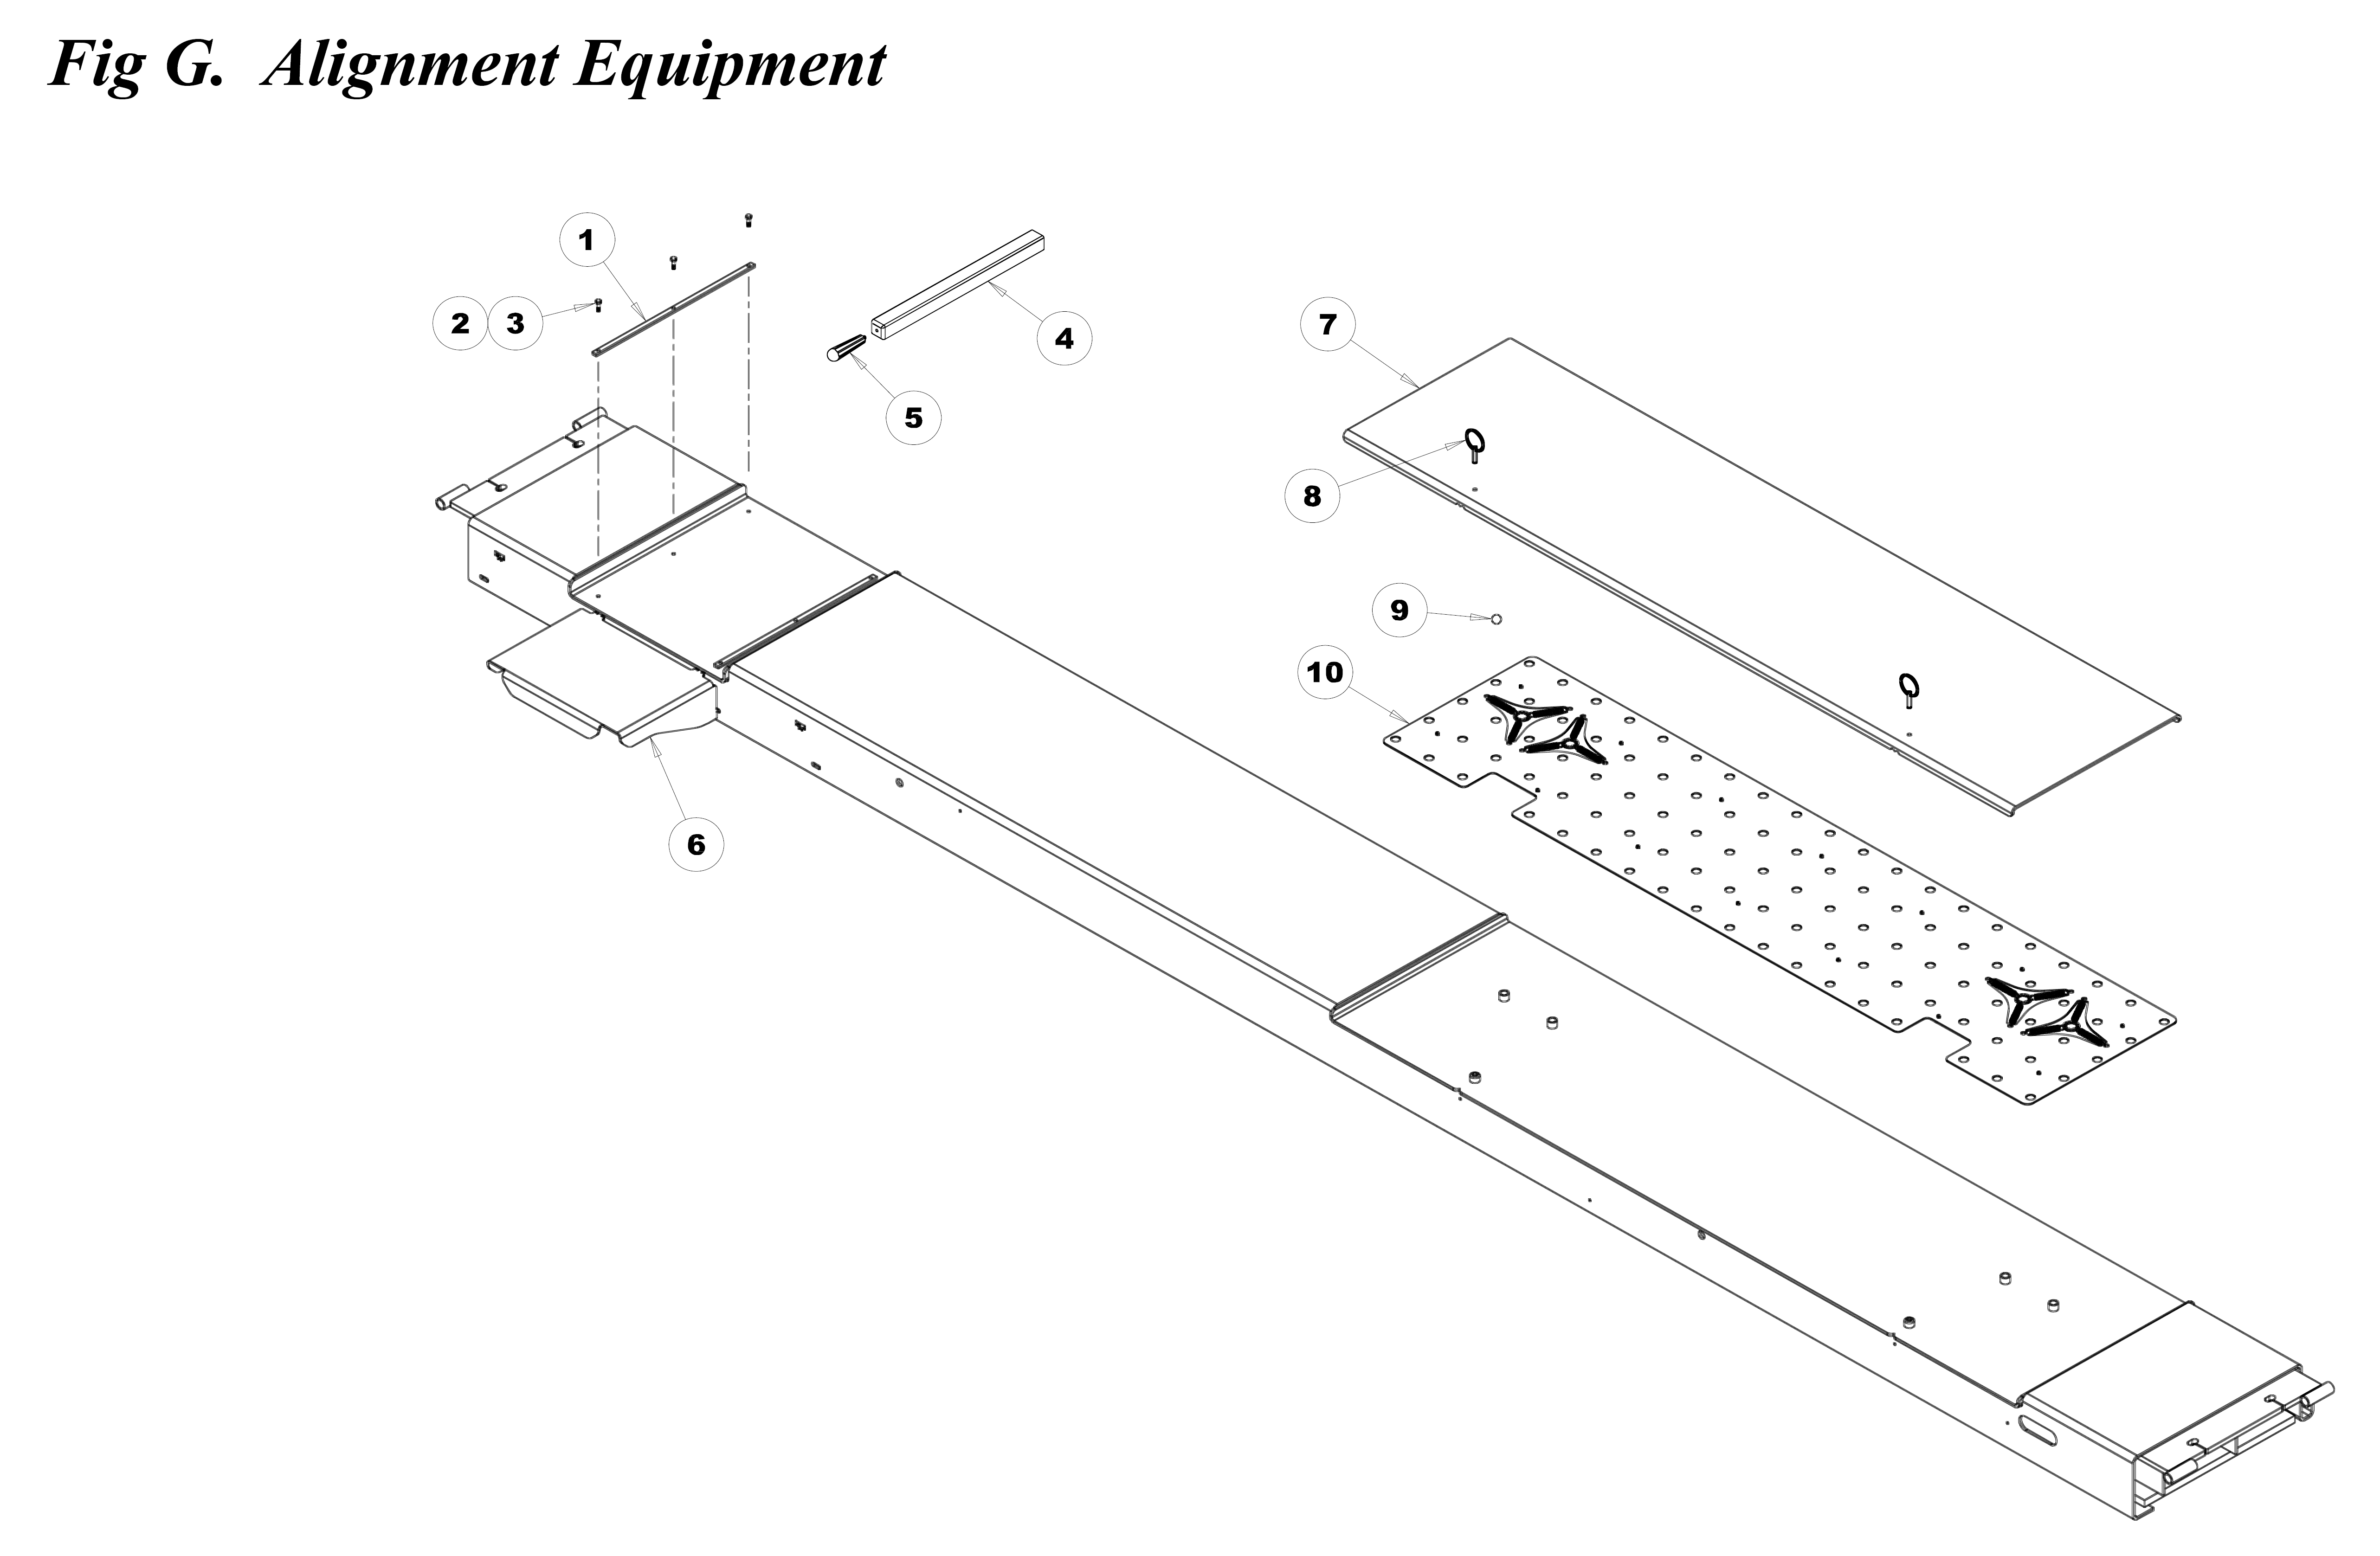 fig-g.-alignment-equipment.png